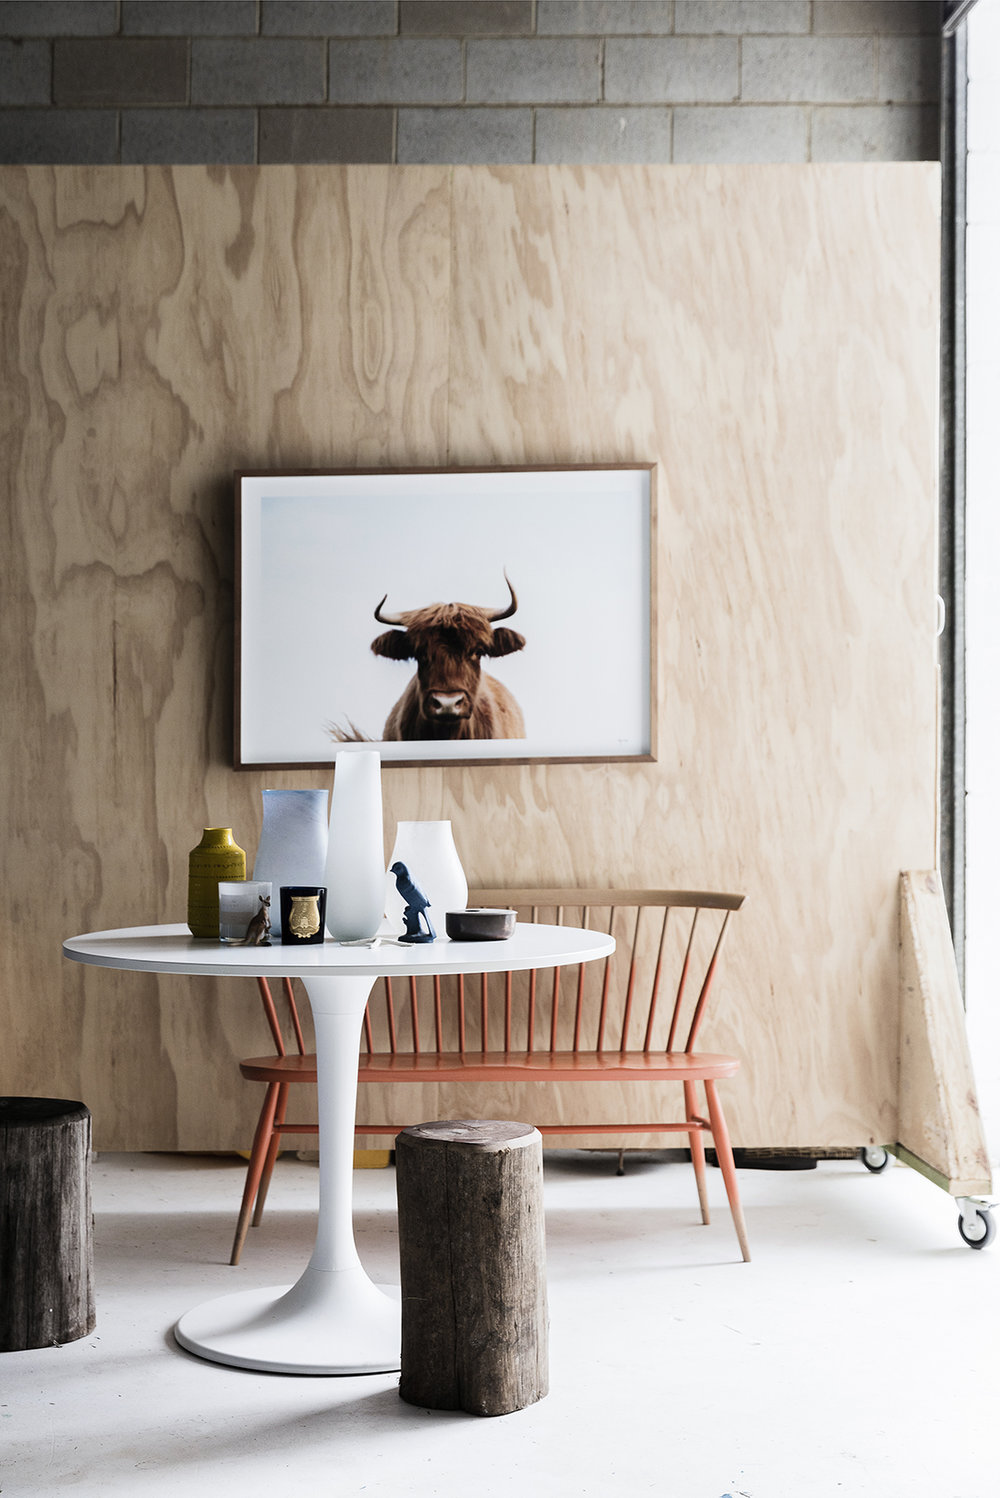 Tour the home of stylist Jason Grant on cattledogs.info